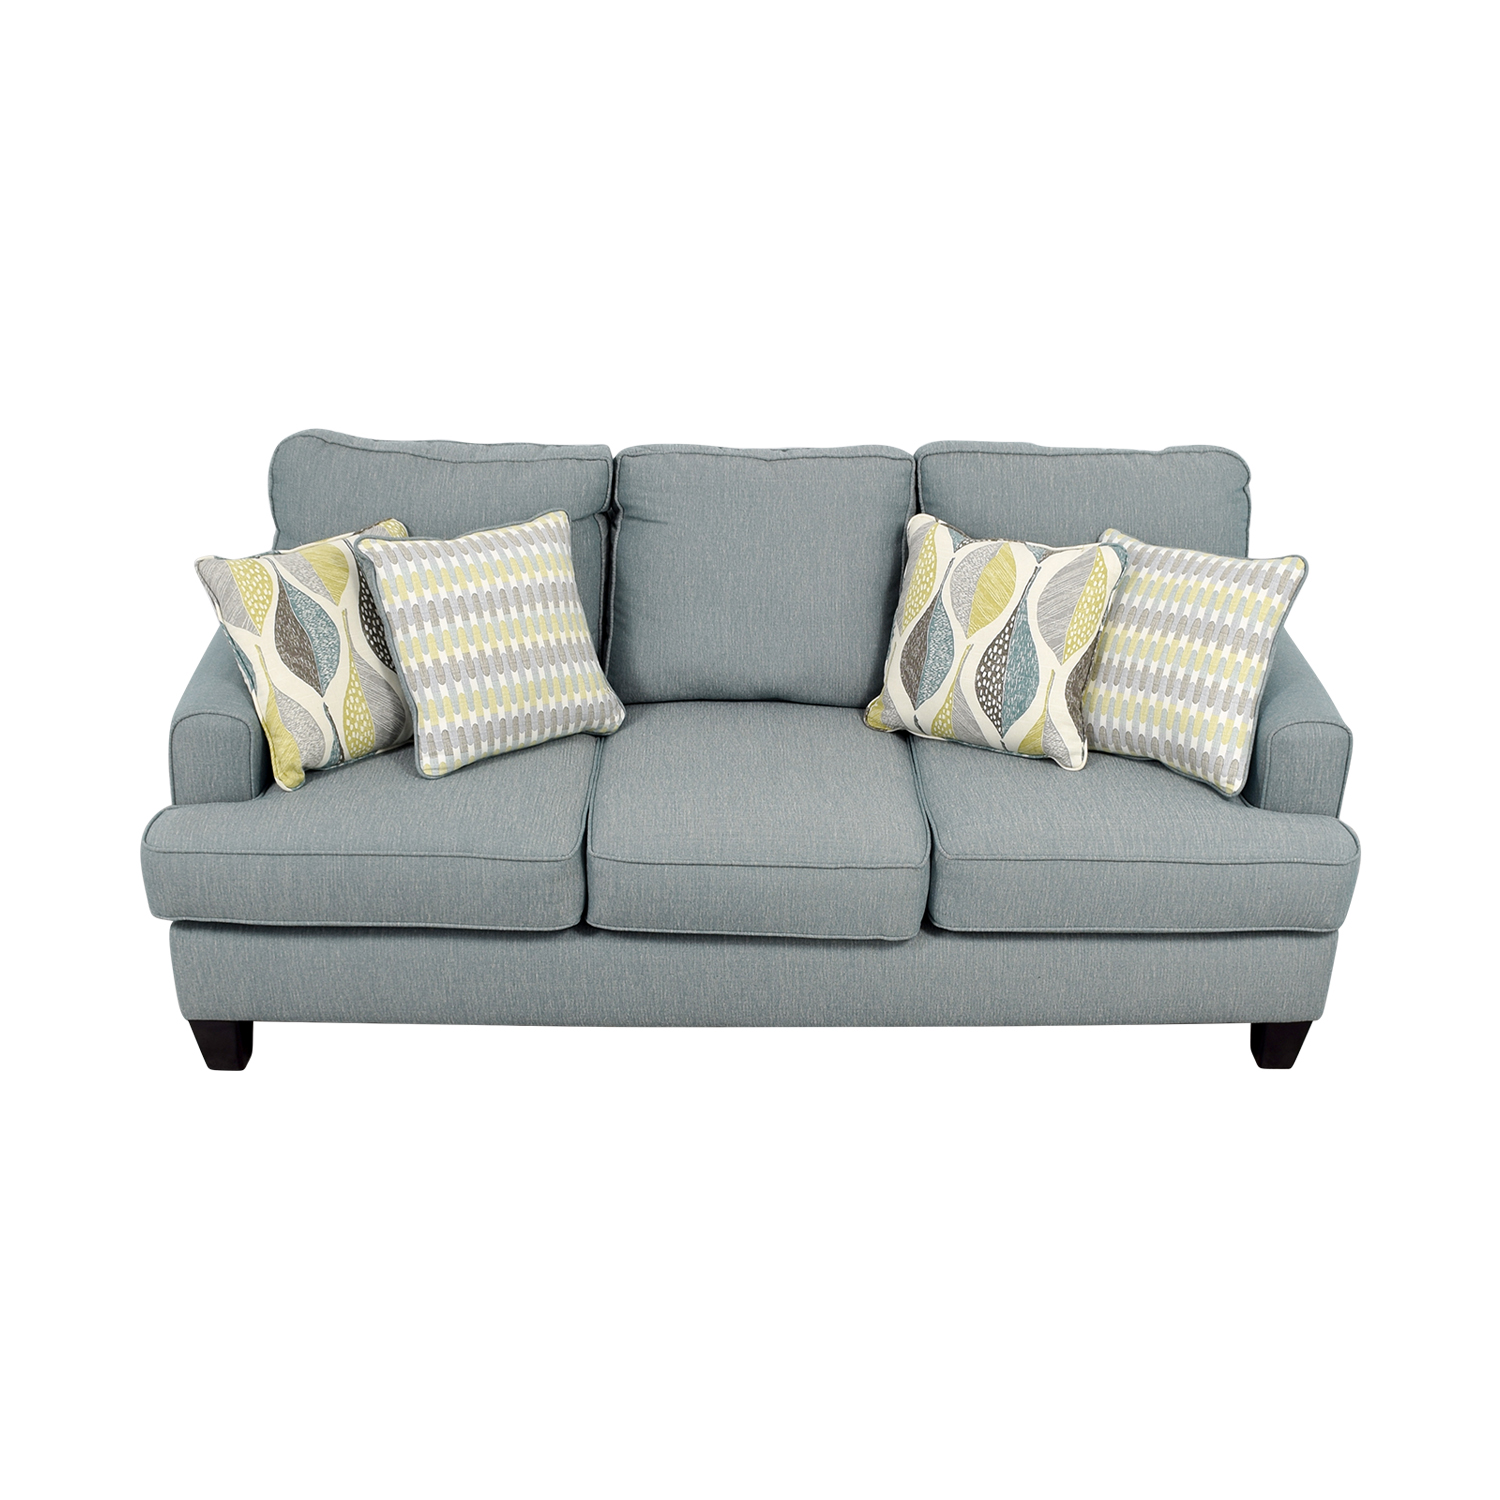 Raymour & Flanigan Blue Fabric Three-Cushion Couch sale